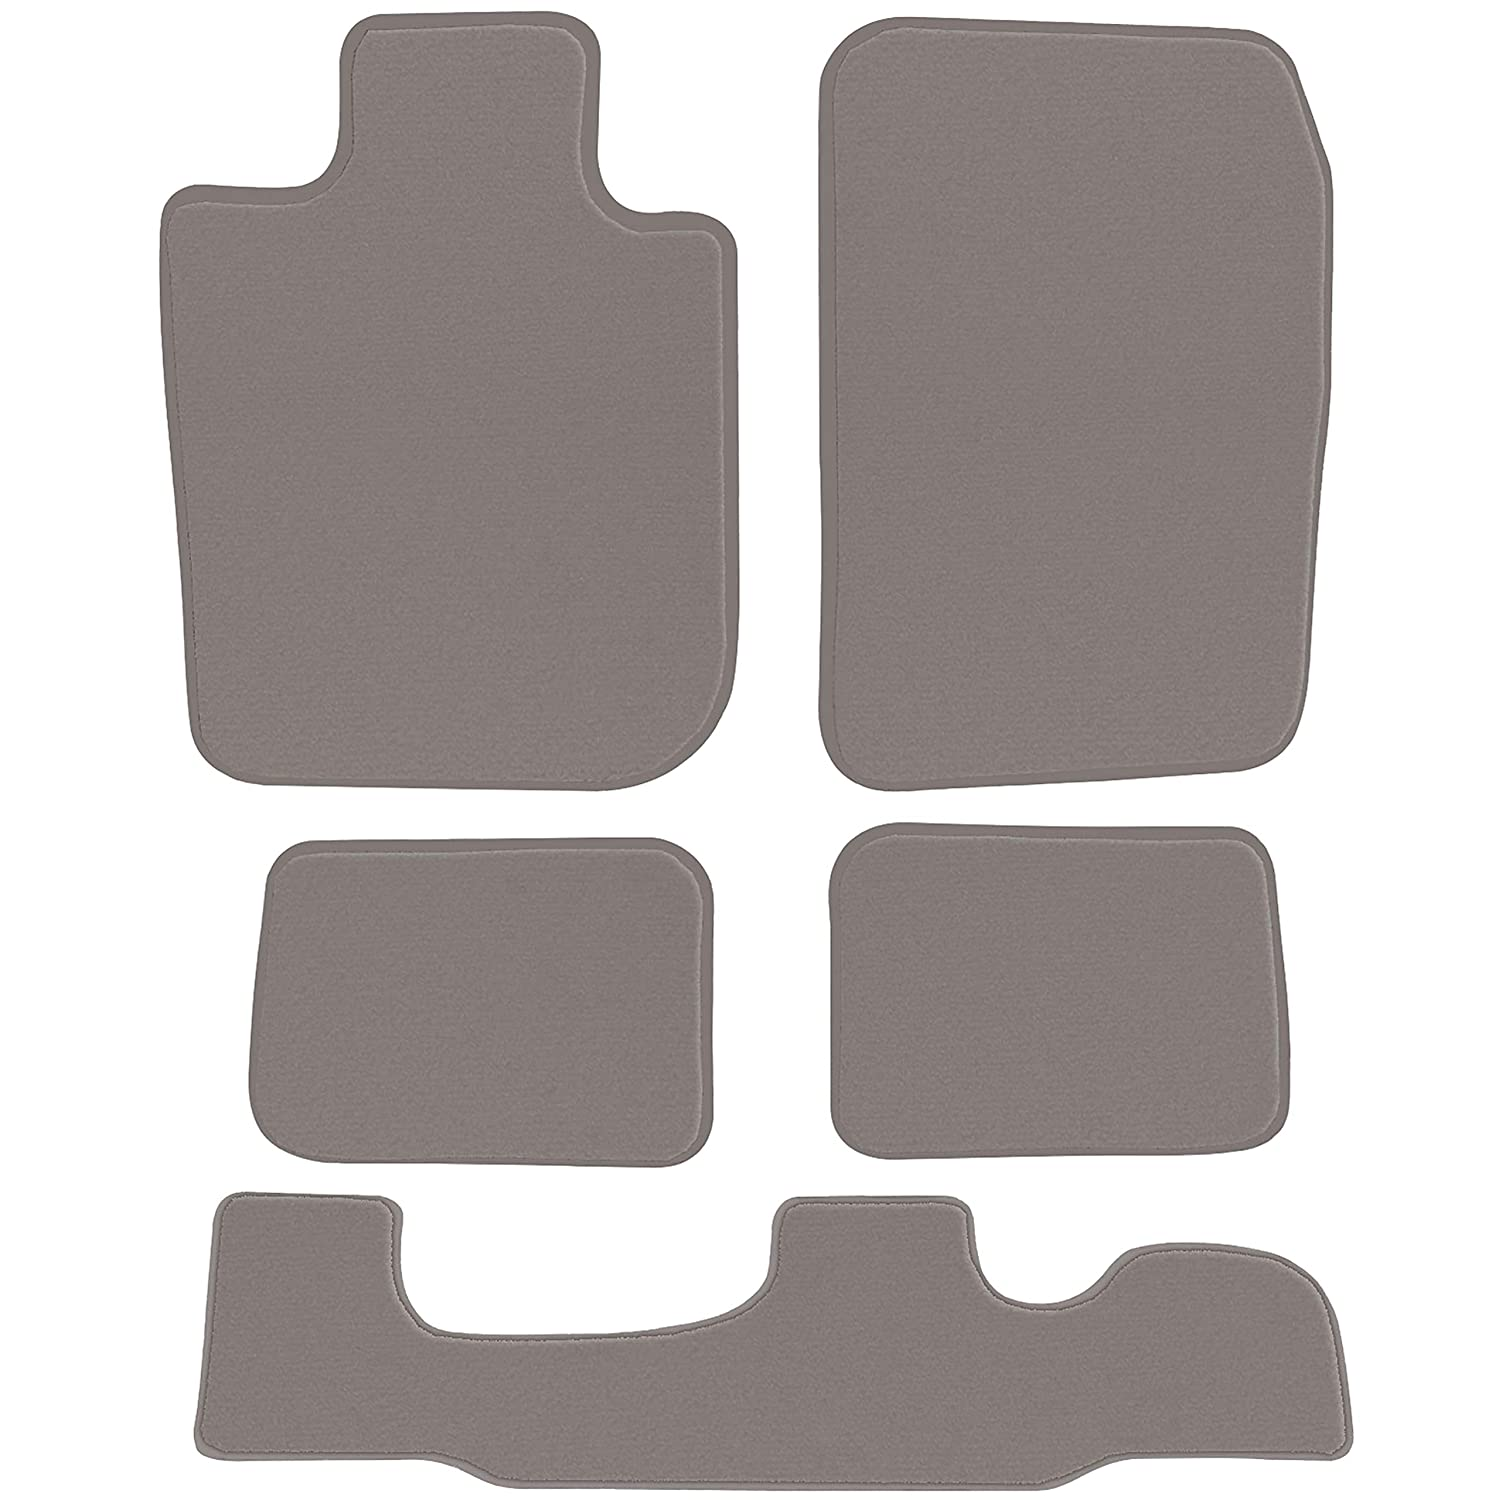 4 Piece Floor 2nd /& 3rd Row GGBAILEY D3569A-LSA-GY-LP Custom Fit Car Mats for 2005 Passenger 2006 2007 Chrysler Town and Country Grey Loop Driver